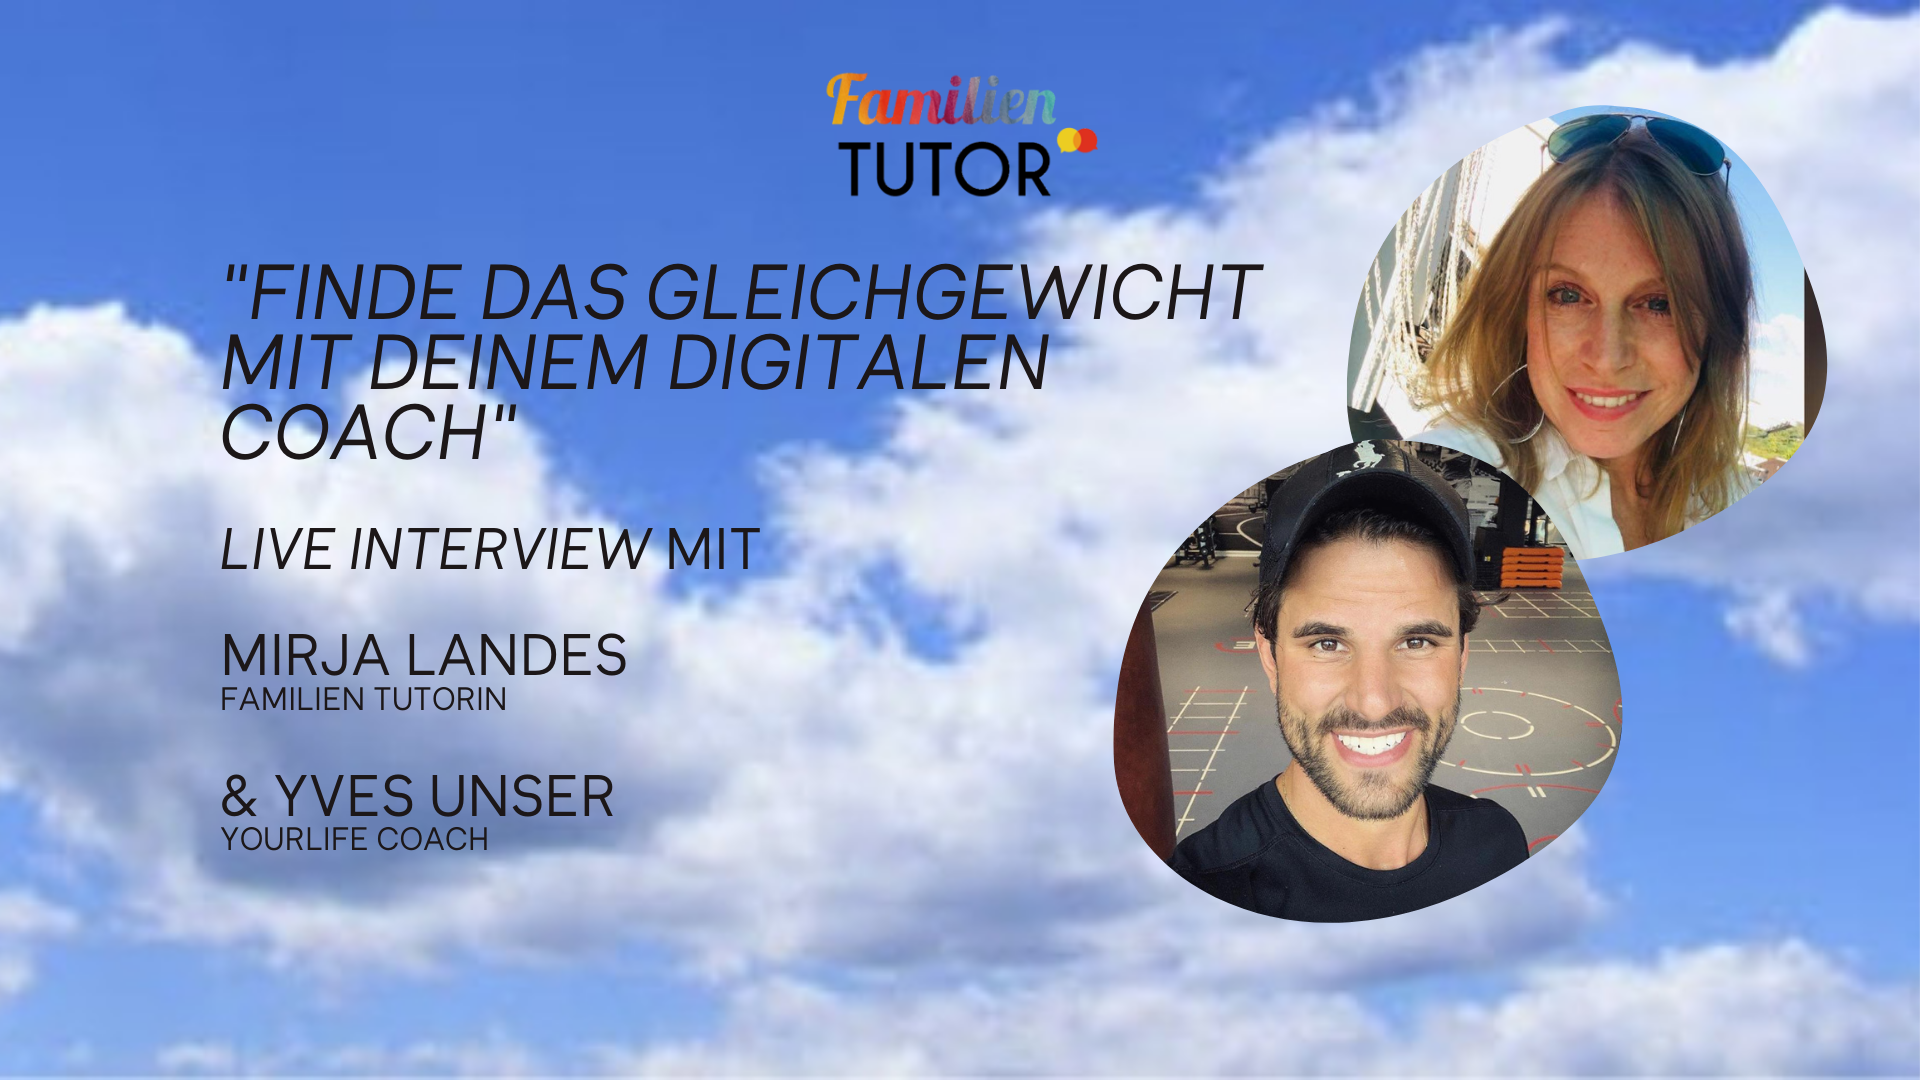 Family Friday Tutorial mit Yves Unser